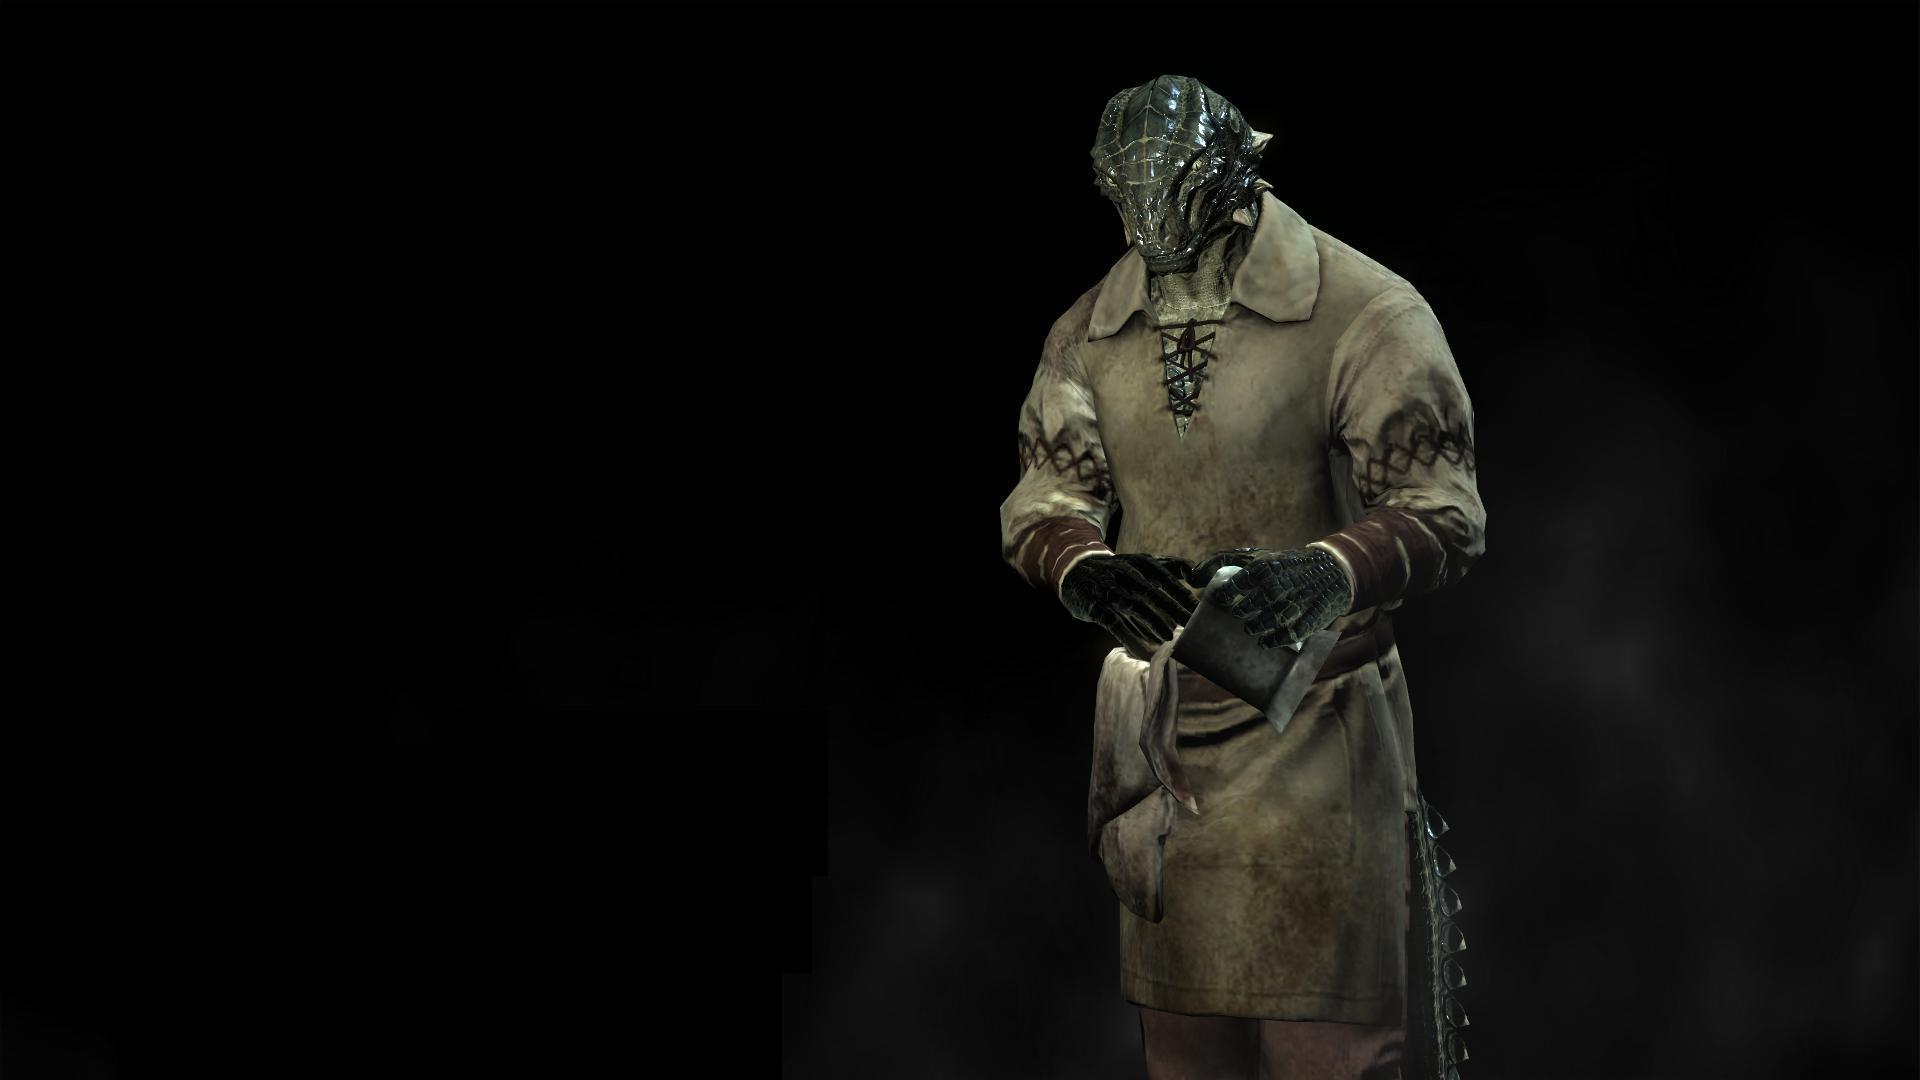 Argonian from the game Skyrim